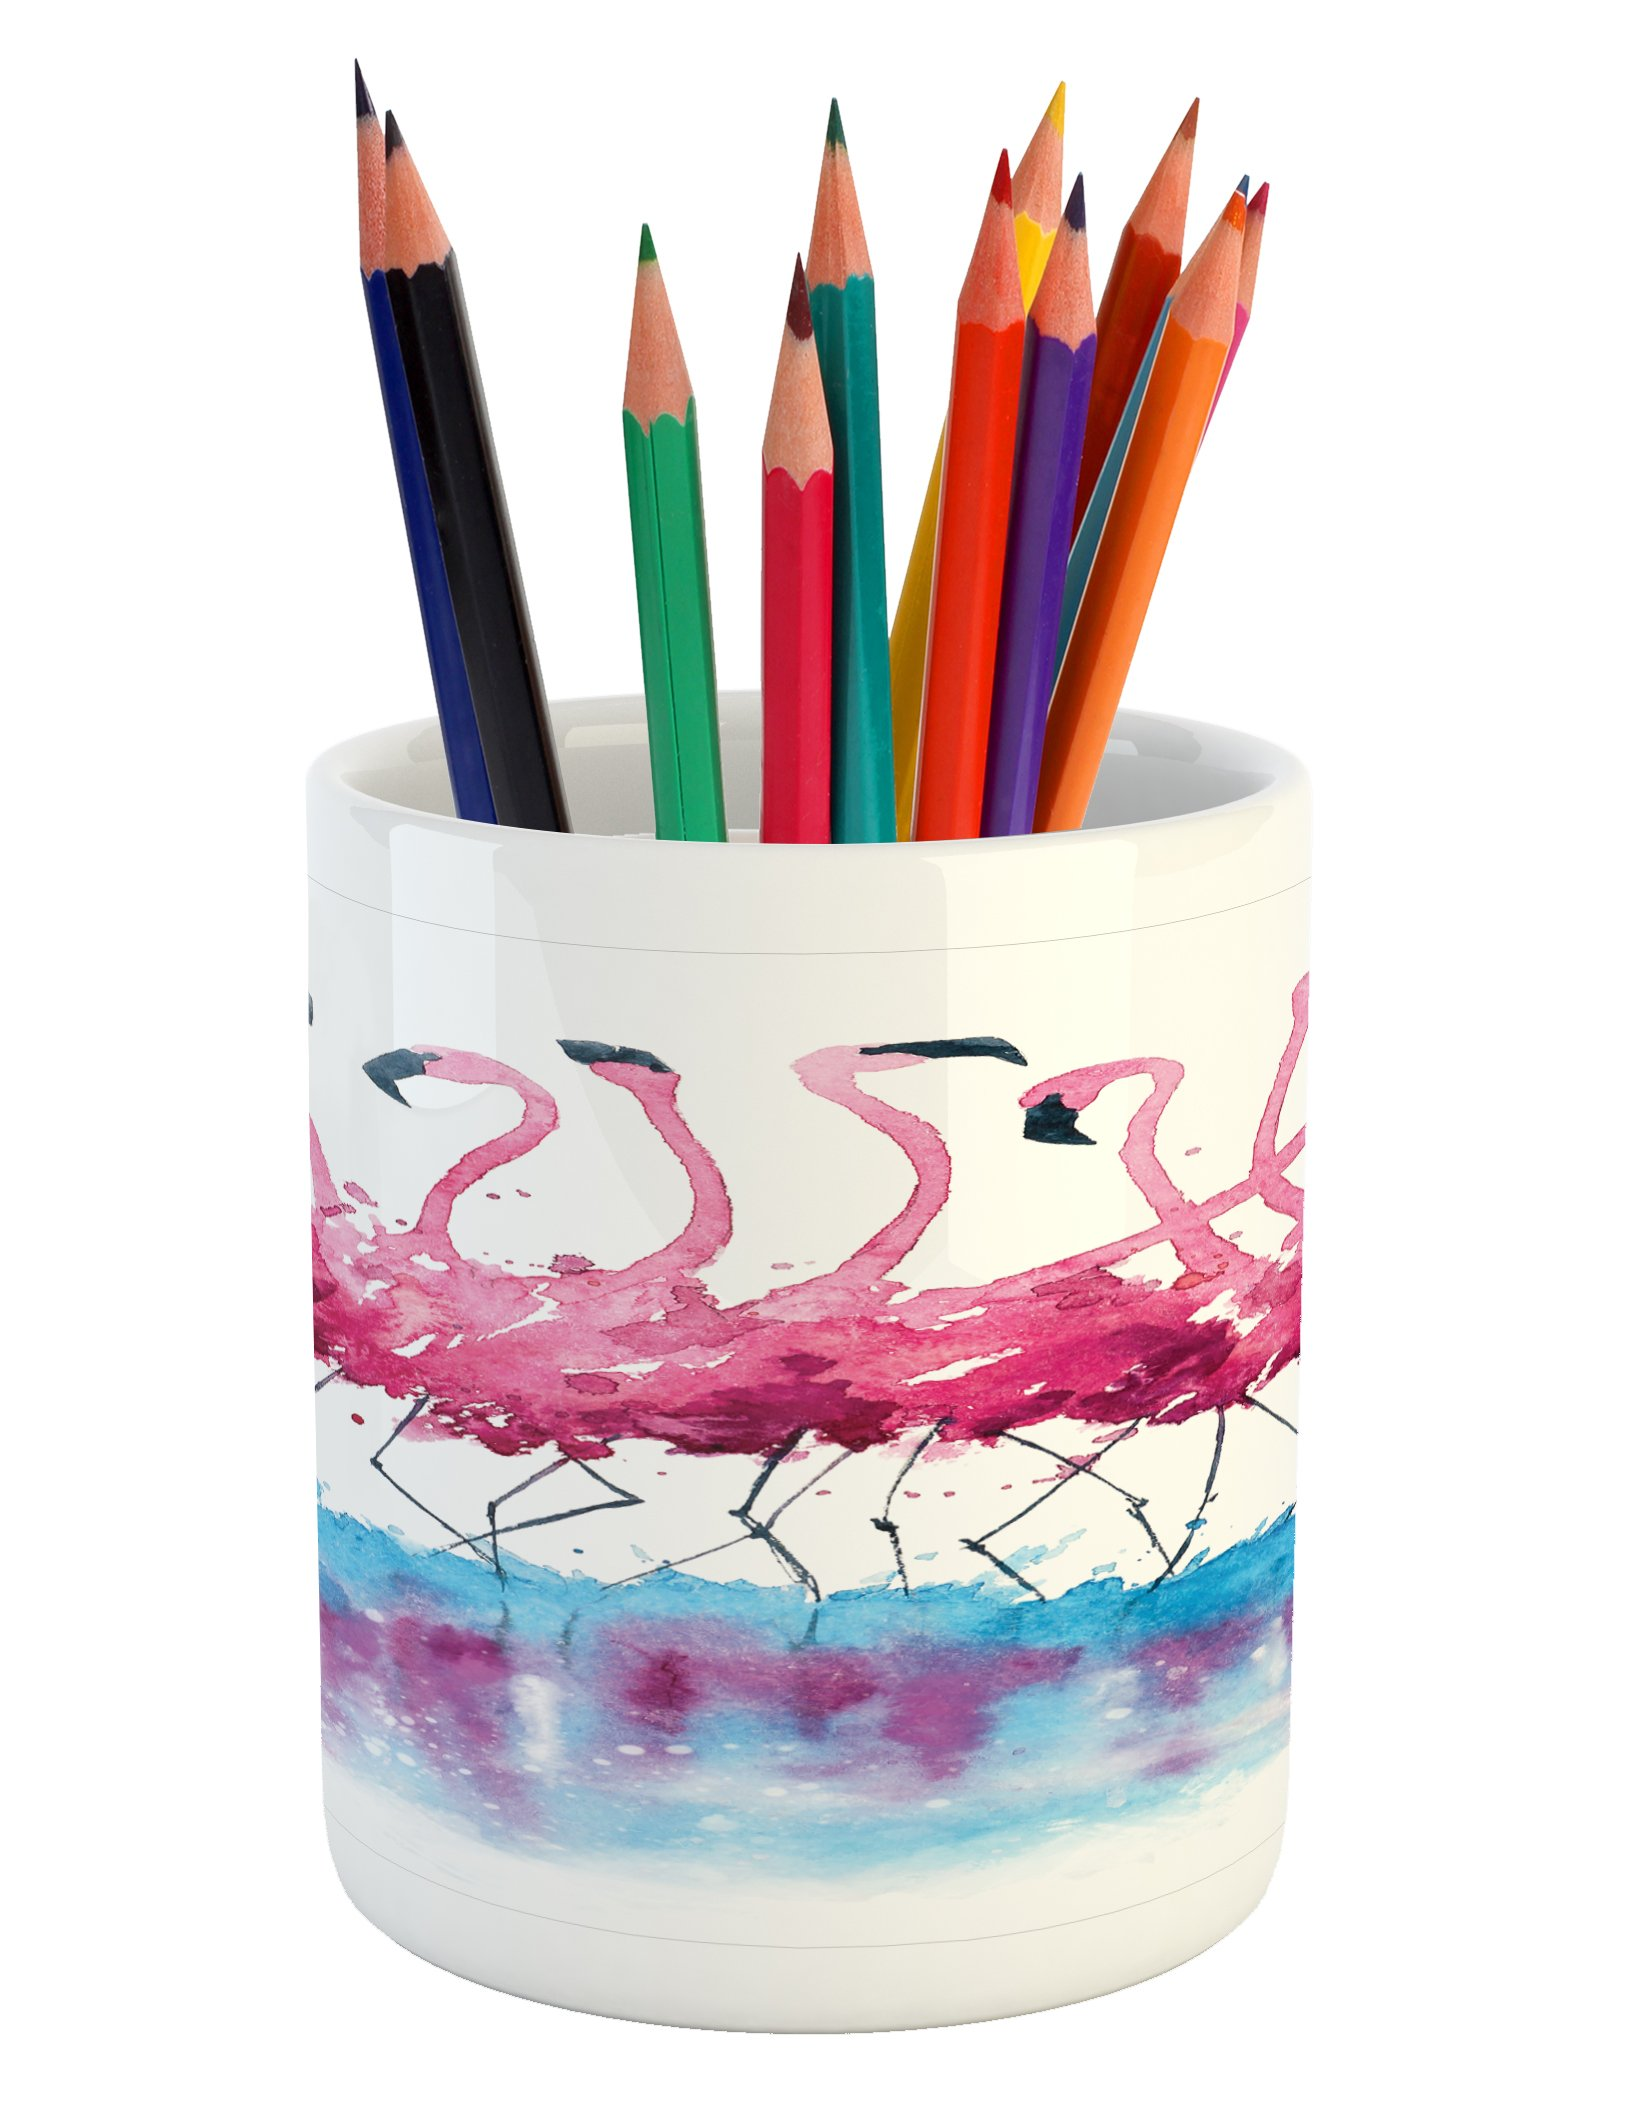 Ambesonne Animal Pencil Pen Holder, Flamingos Love Birds Feather Romance Brushstroke Splash Watercolor Effect, Printed Ceramic Pencil Pen Holder for Desk Office Accessory, Pink Blue Purple